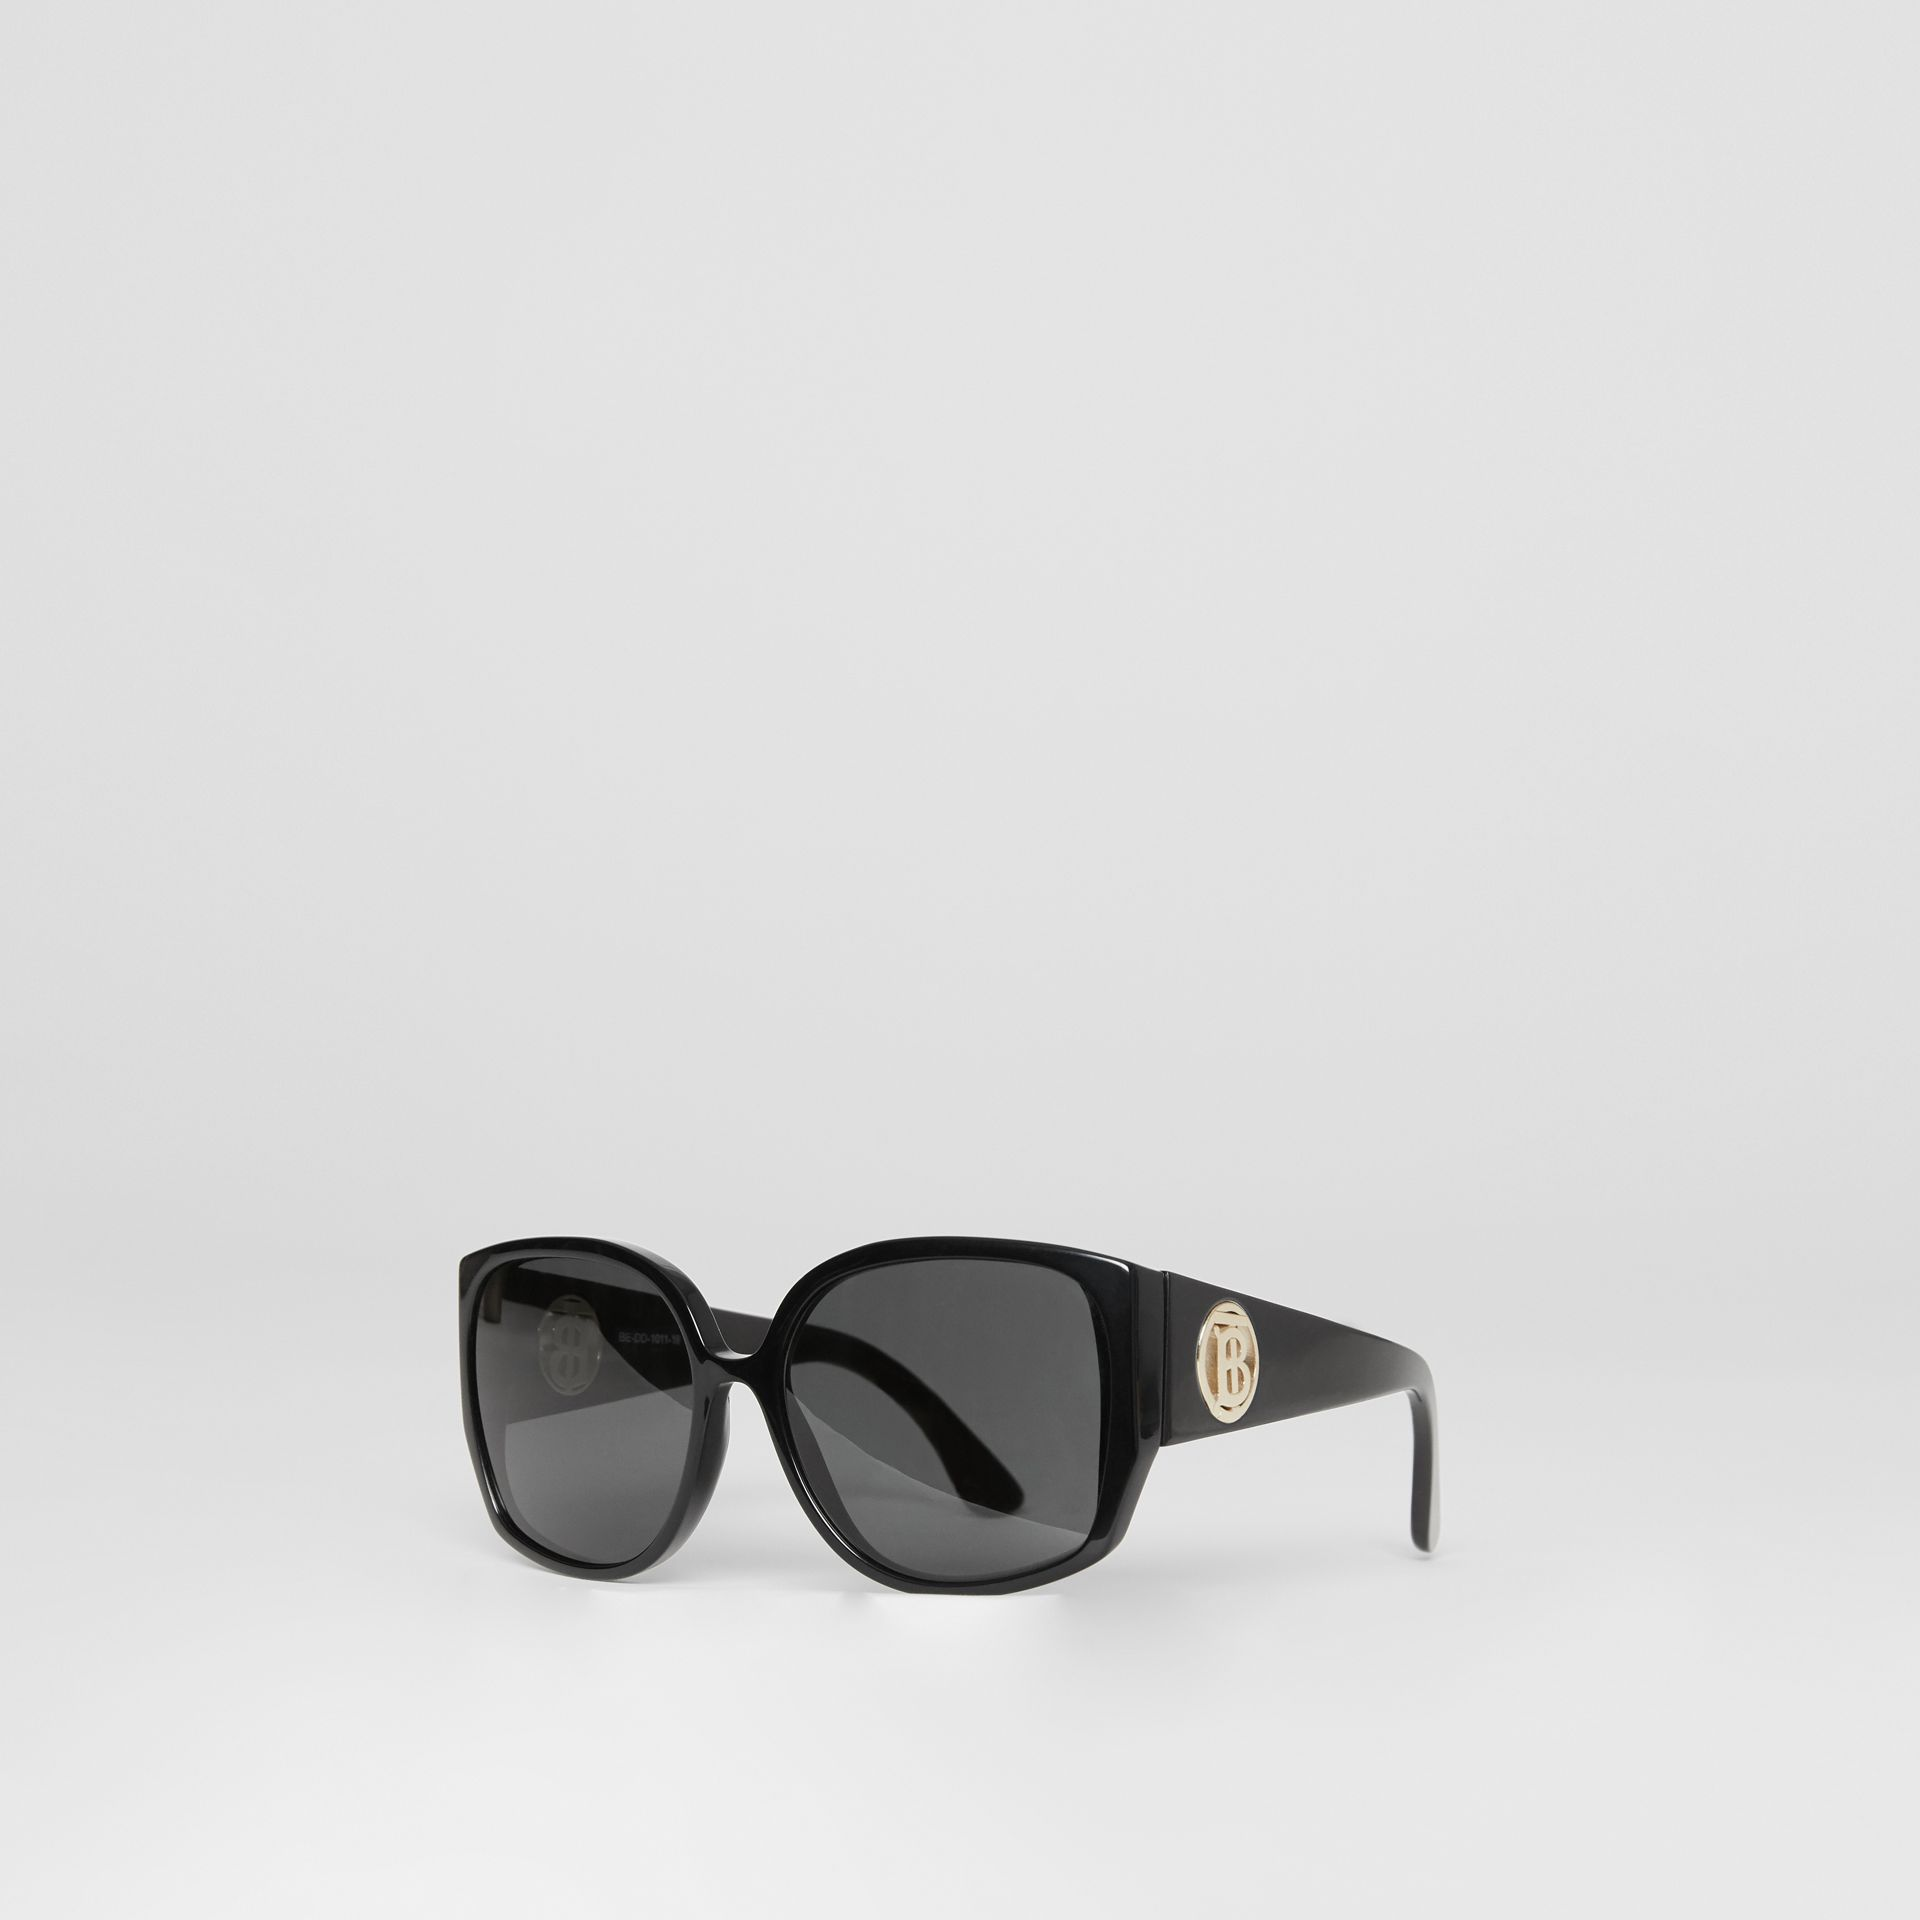 Oversized Butterfly Frame Sunglasses in Black - Women | Burberry Canada - gallery image 5